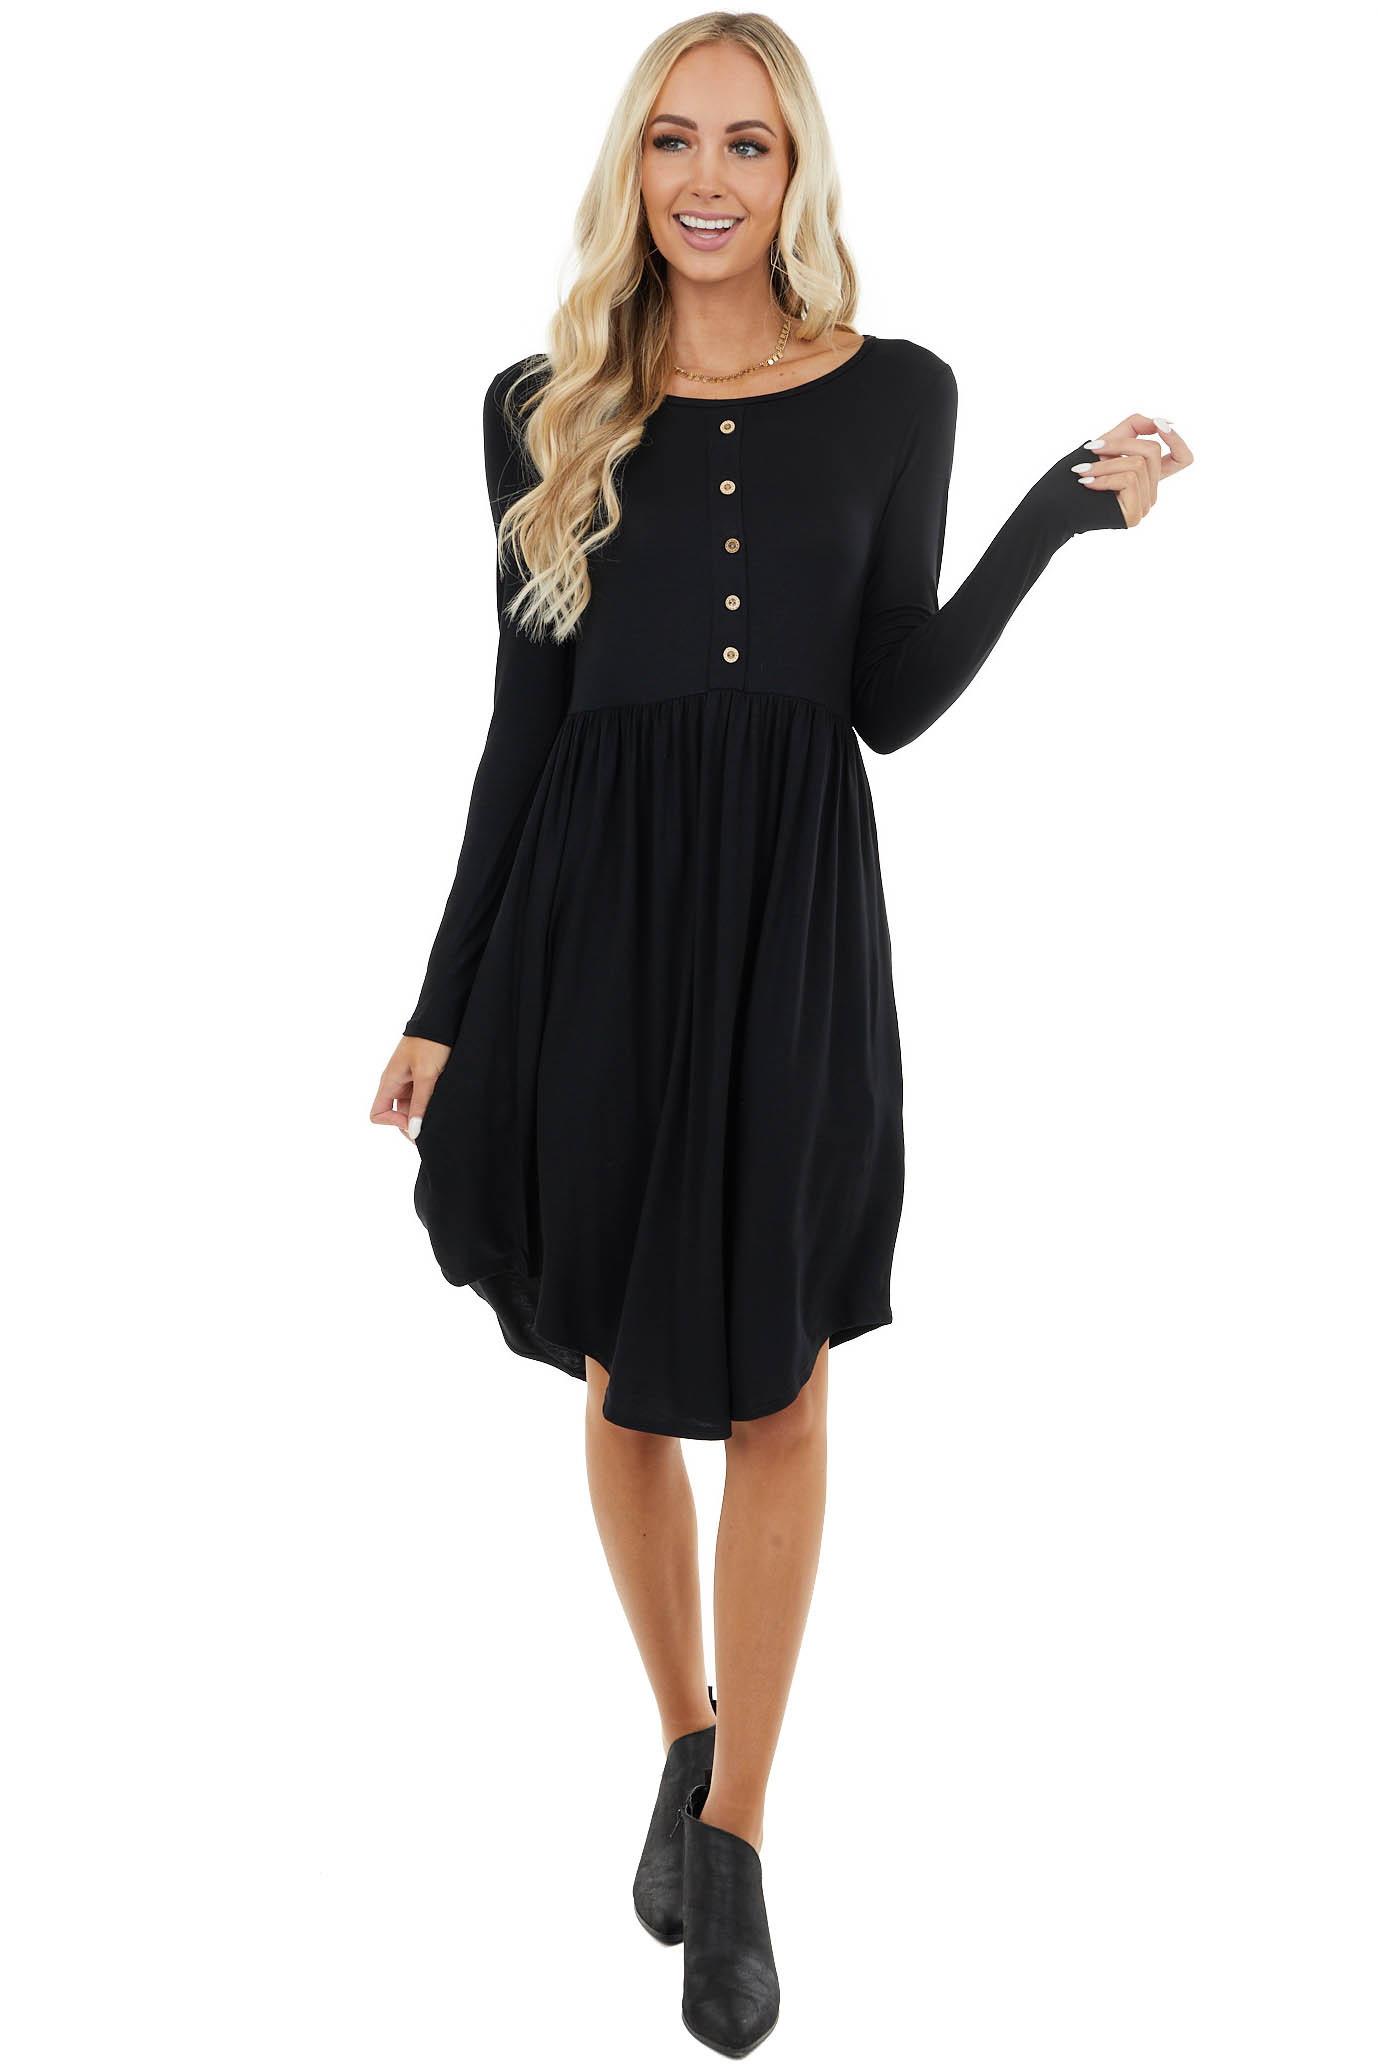 Black Long Sleeve Knit Dress with Button Details